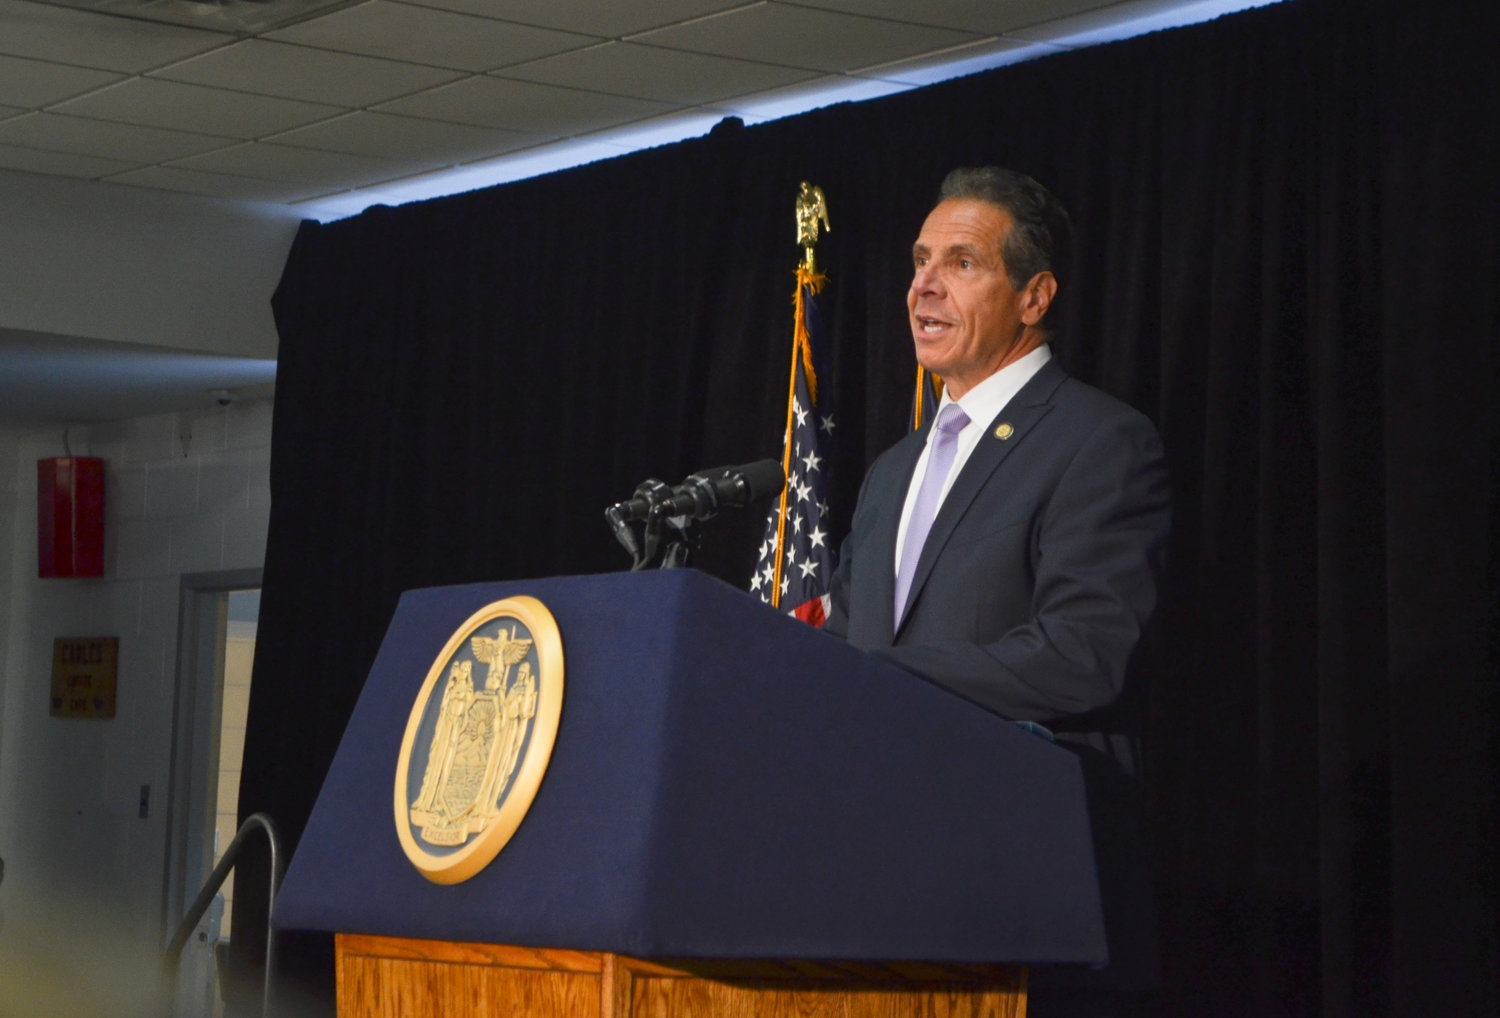 Gov. Andrew Cuomo announced Baldwin as the winner of a $10 million grant as part of the state's Downtown Revitalization Initiative at a press conference at Baldwin High School on Tuesday.